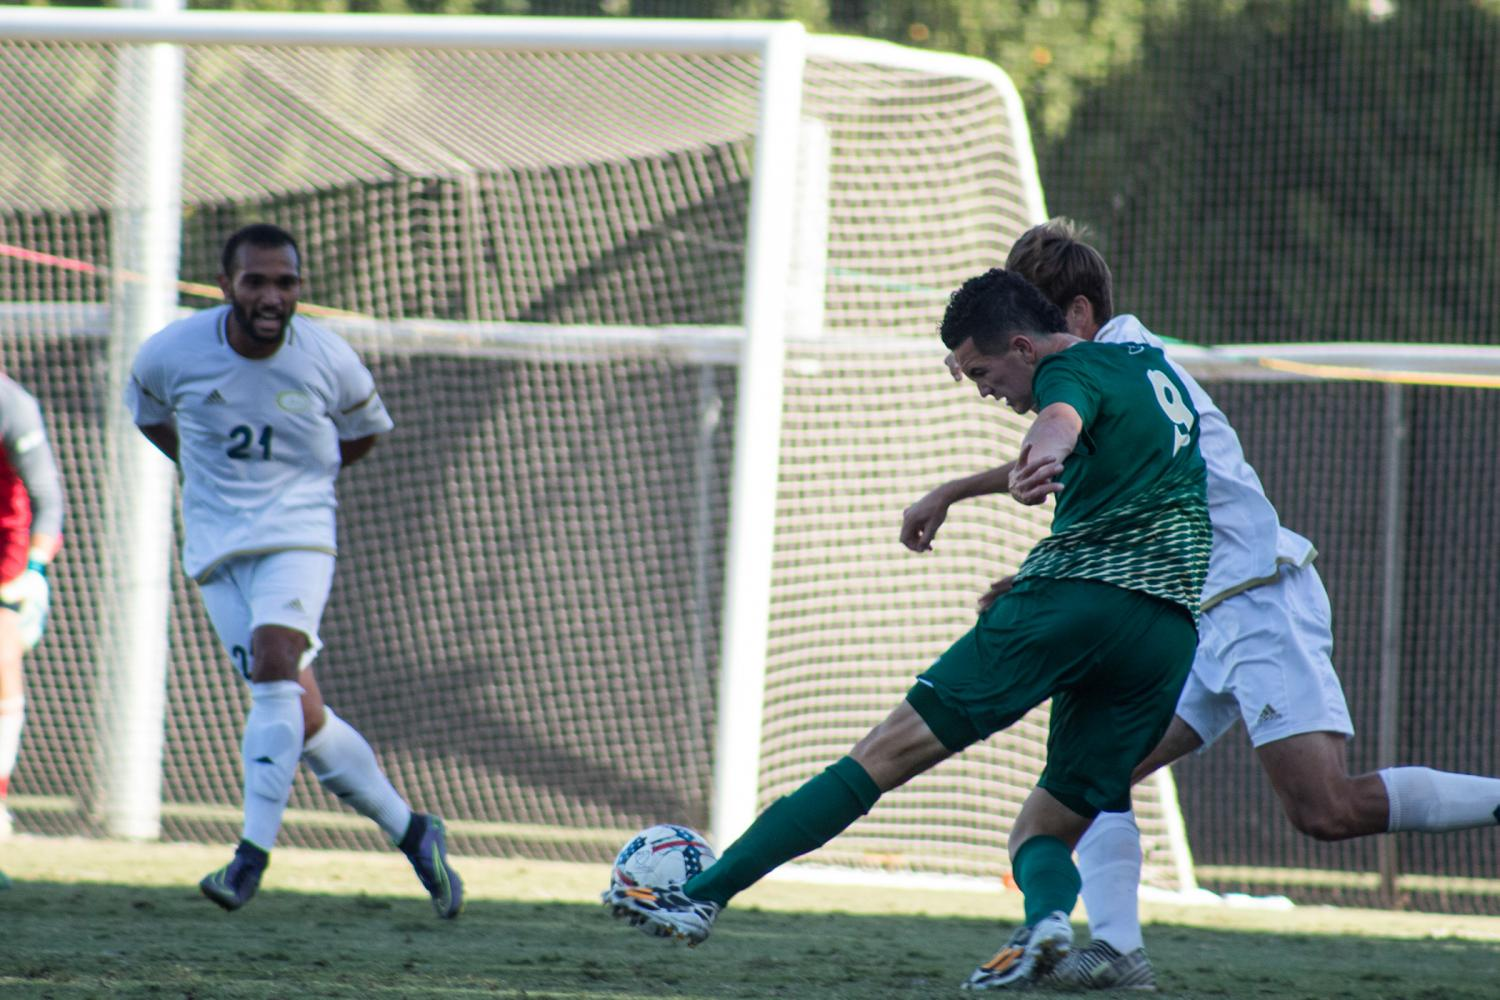 Sacramento State sophomore forward Christian Webb attempts a shot against UC Davis. Saturday, Oct. 14 at Hornet Field. Sac State attempted six shot attempts to UC Davis' 14 during its 2-0 loss.